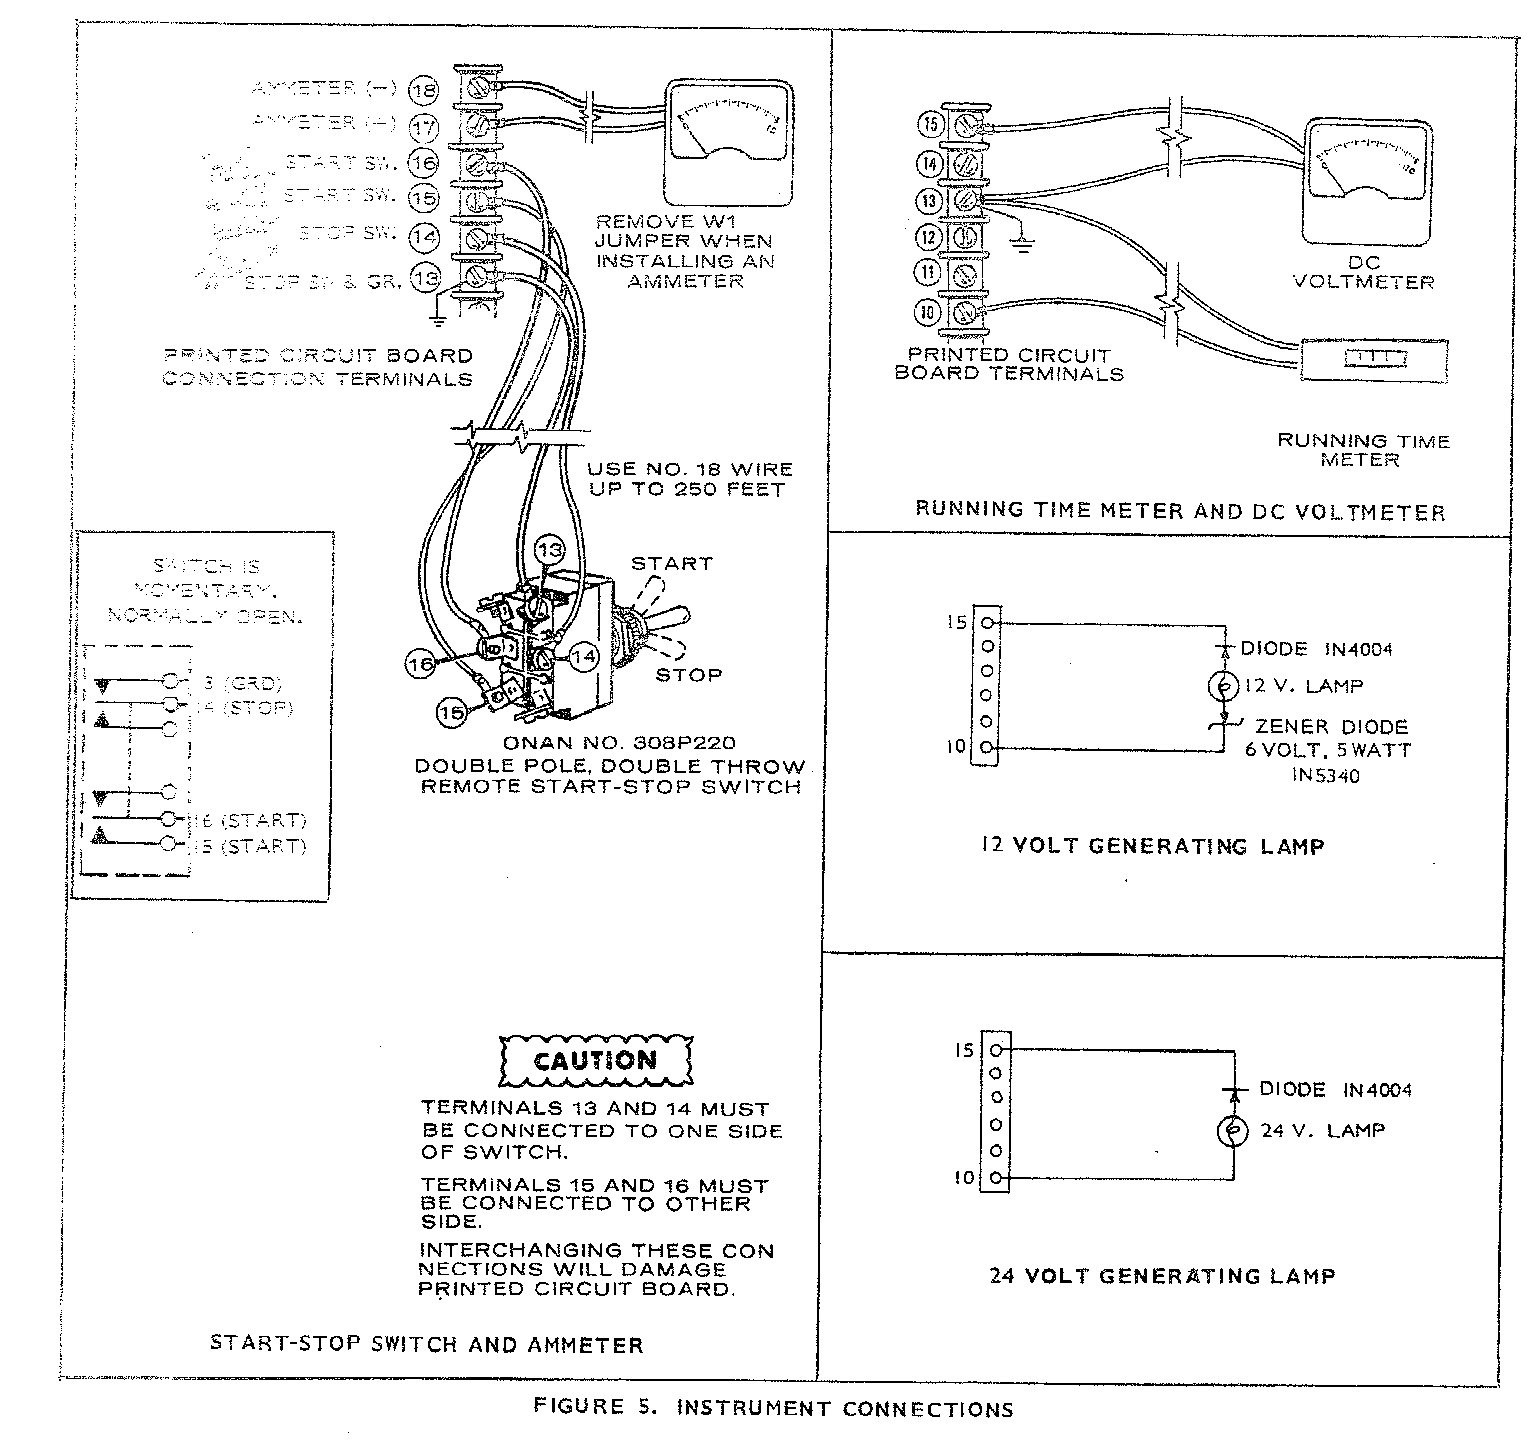 Onan Generator Remote Start Switch Wiring Diagram